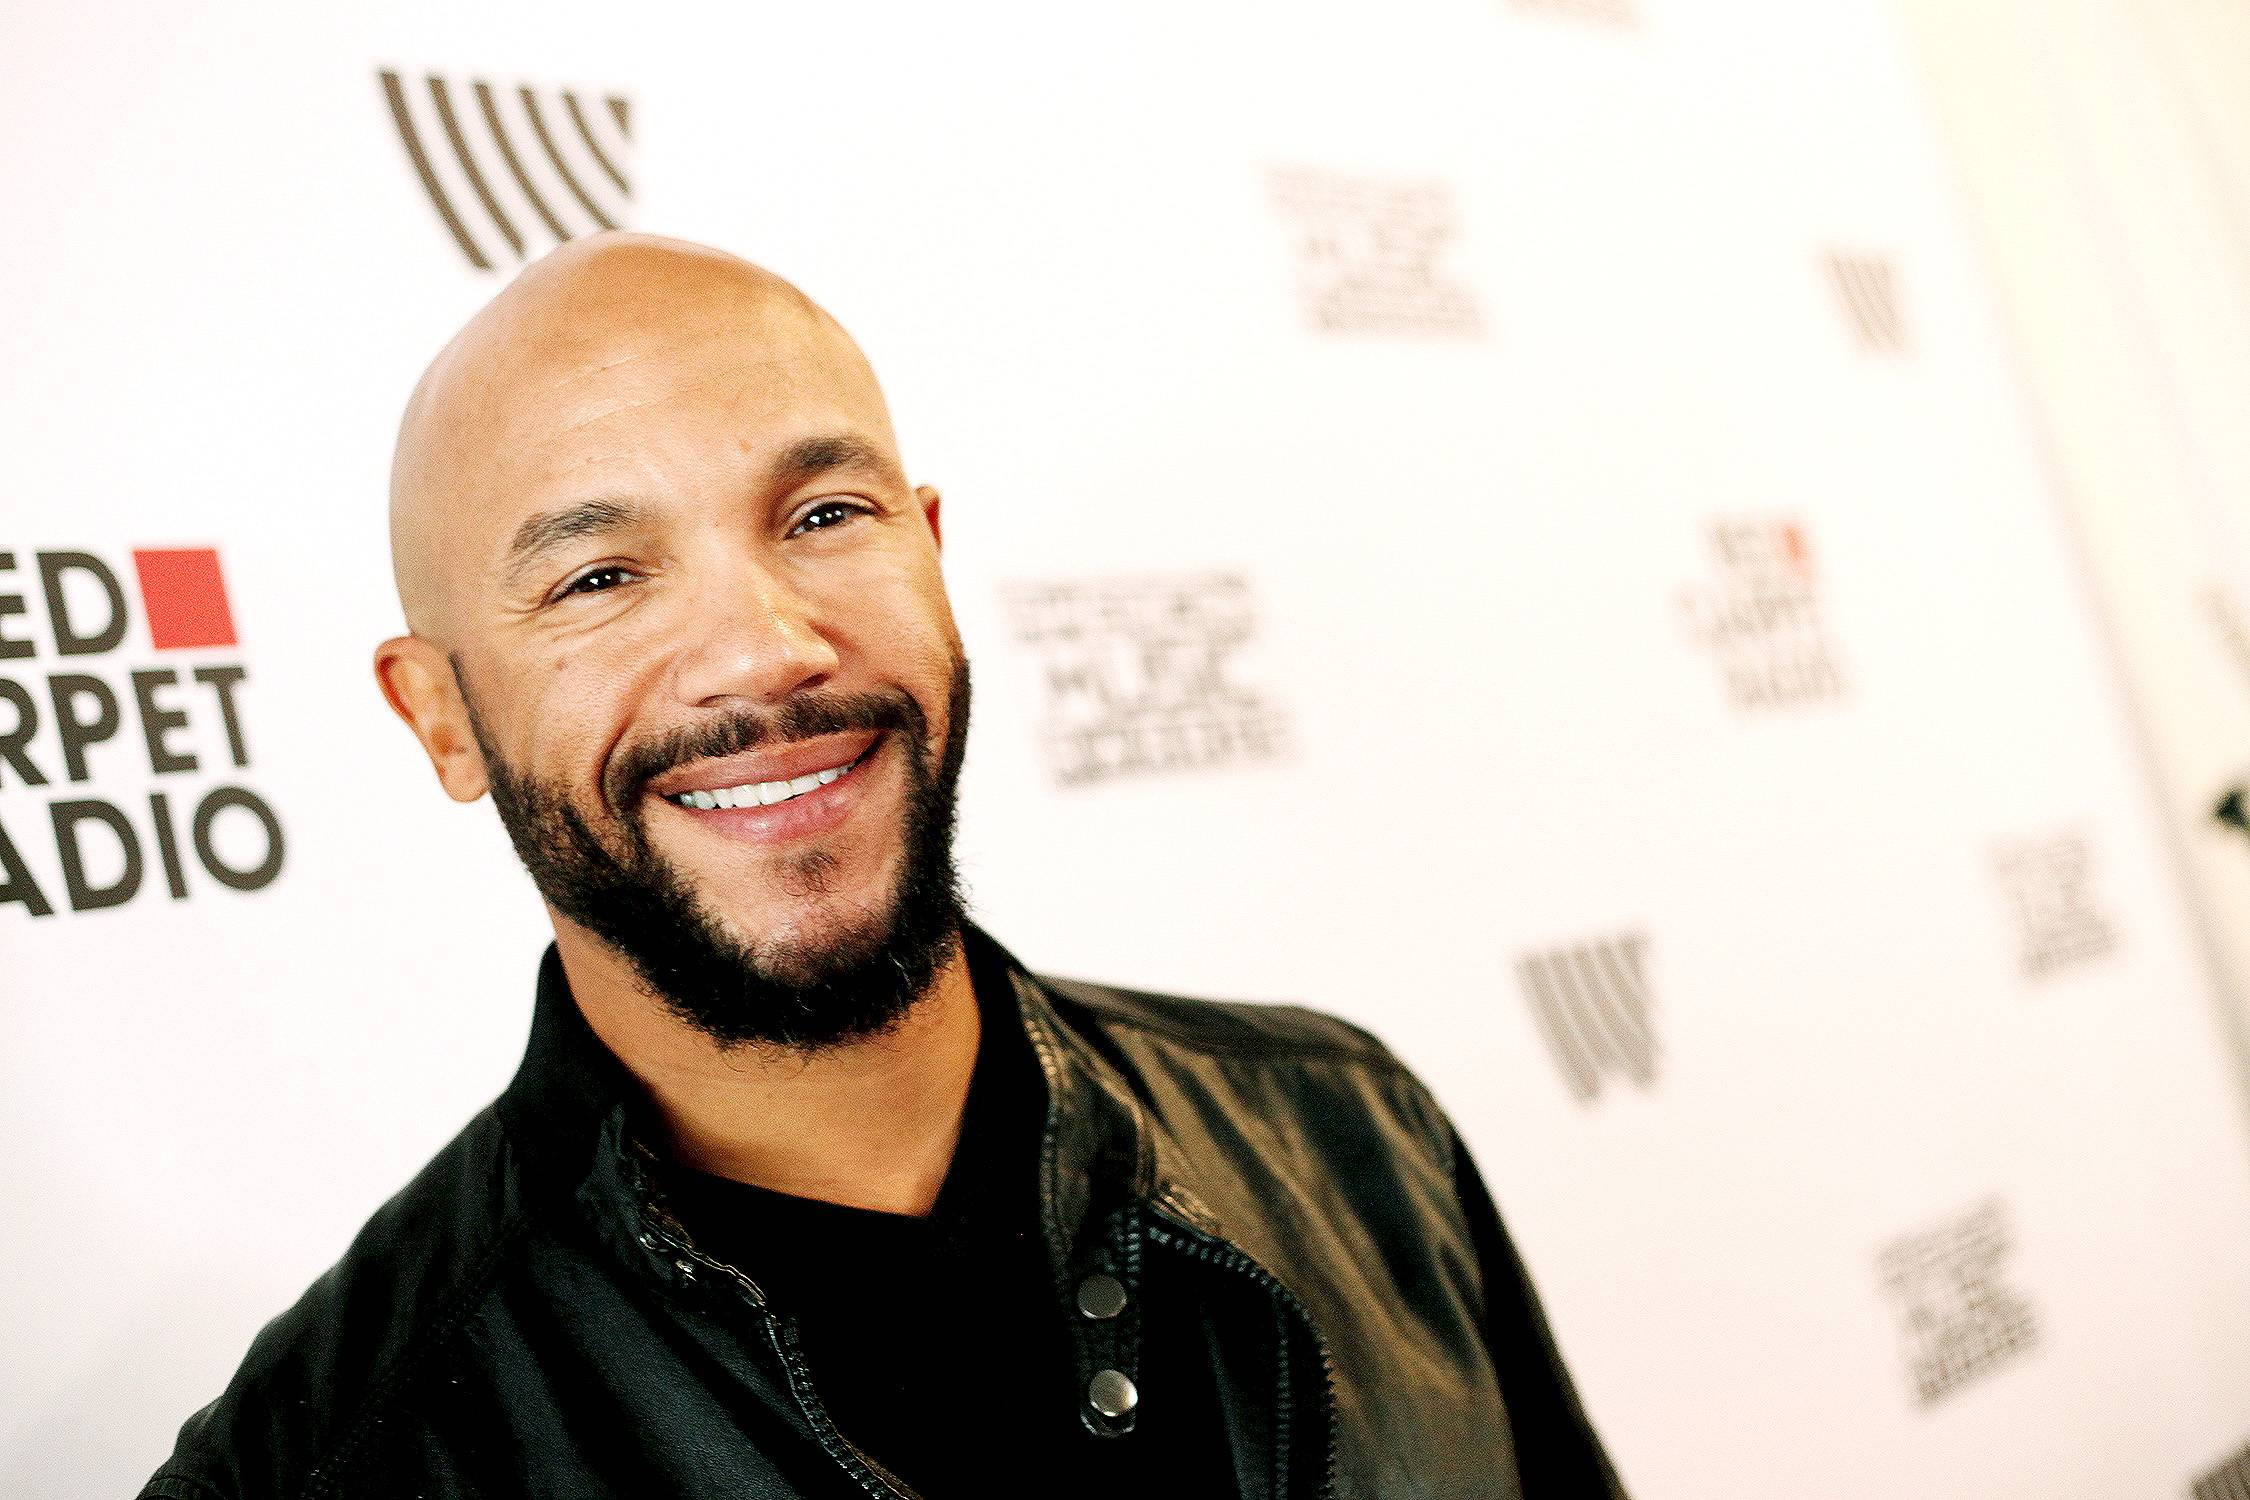 The Real Stephen Bishop  - Actor Stephen Bishop also stars in the TV Movie With This Ring alongside Regina Hall, Jill Scott and Eve. (Photo: Tommaso Boddi/Getty Images for DCP)